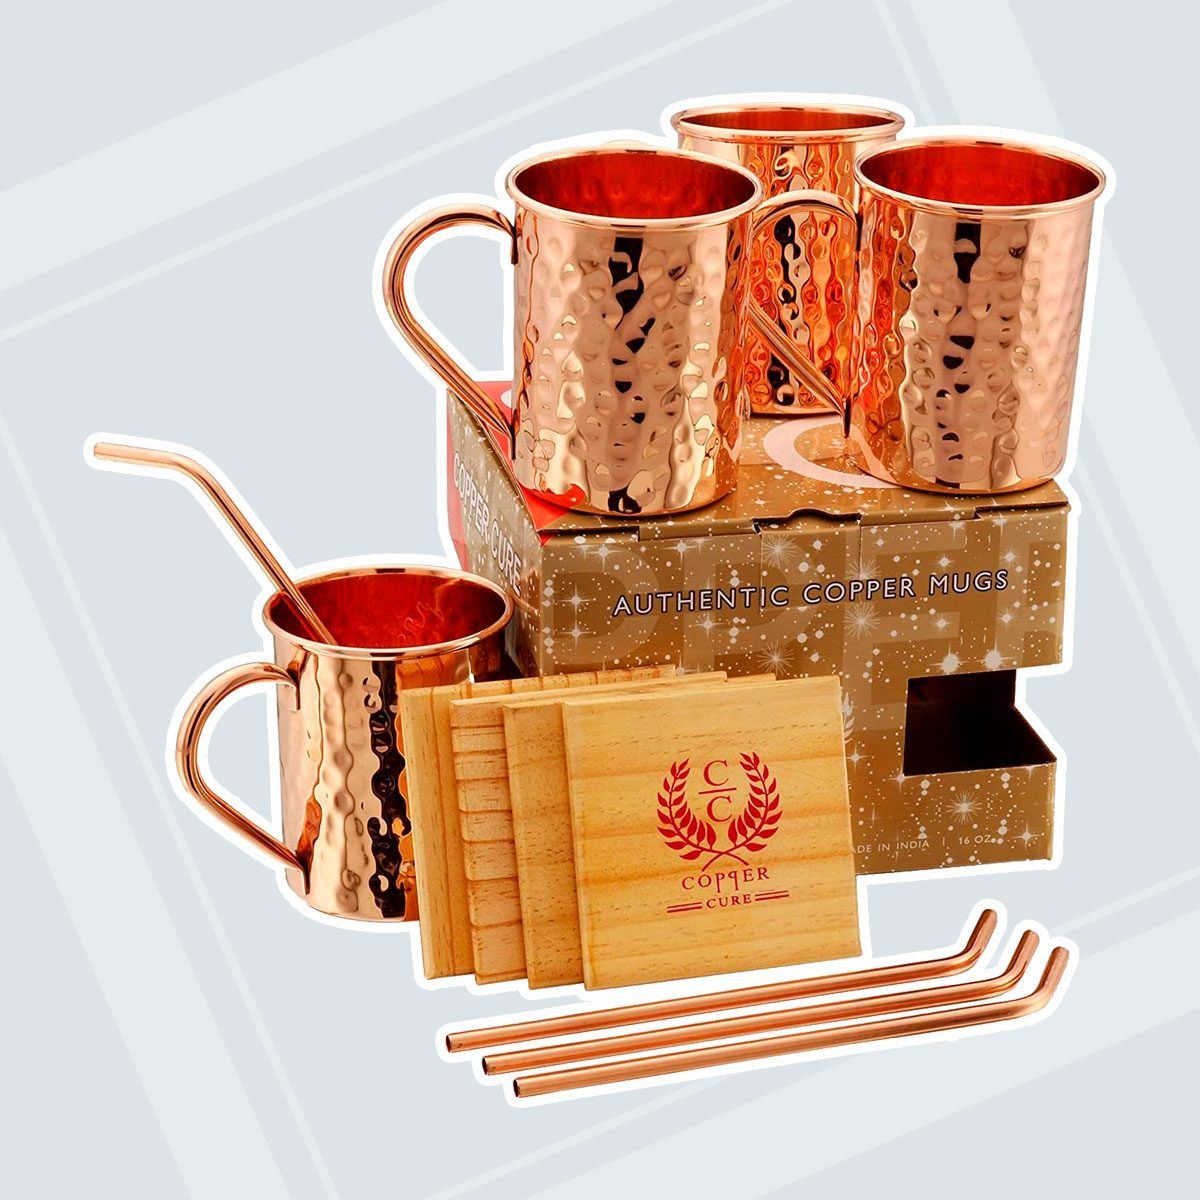 SOLID COPPER MUGS WITH COPPER STRAWS AND PINE WOOD COASTERS